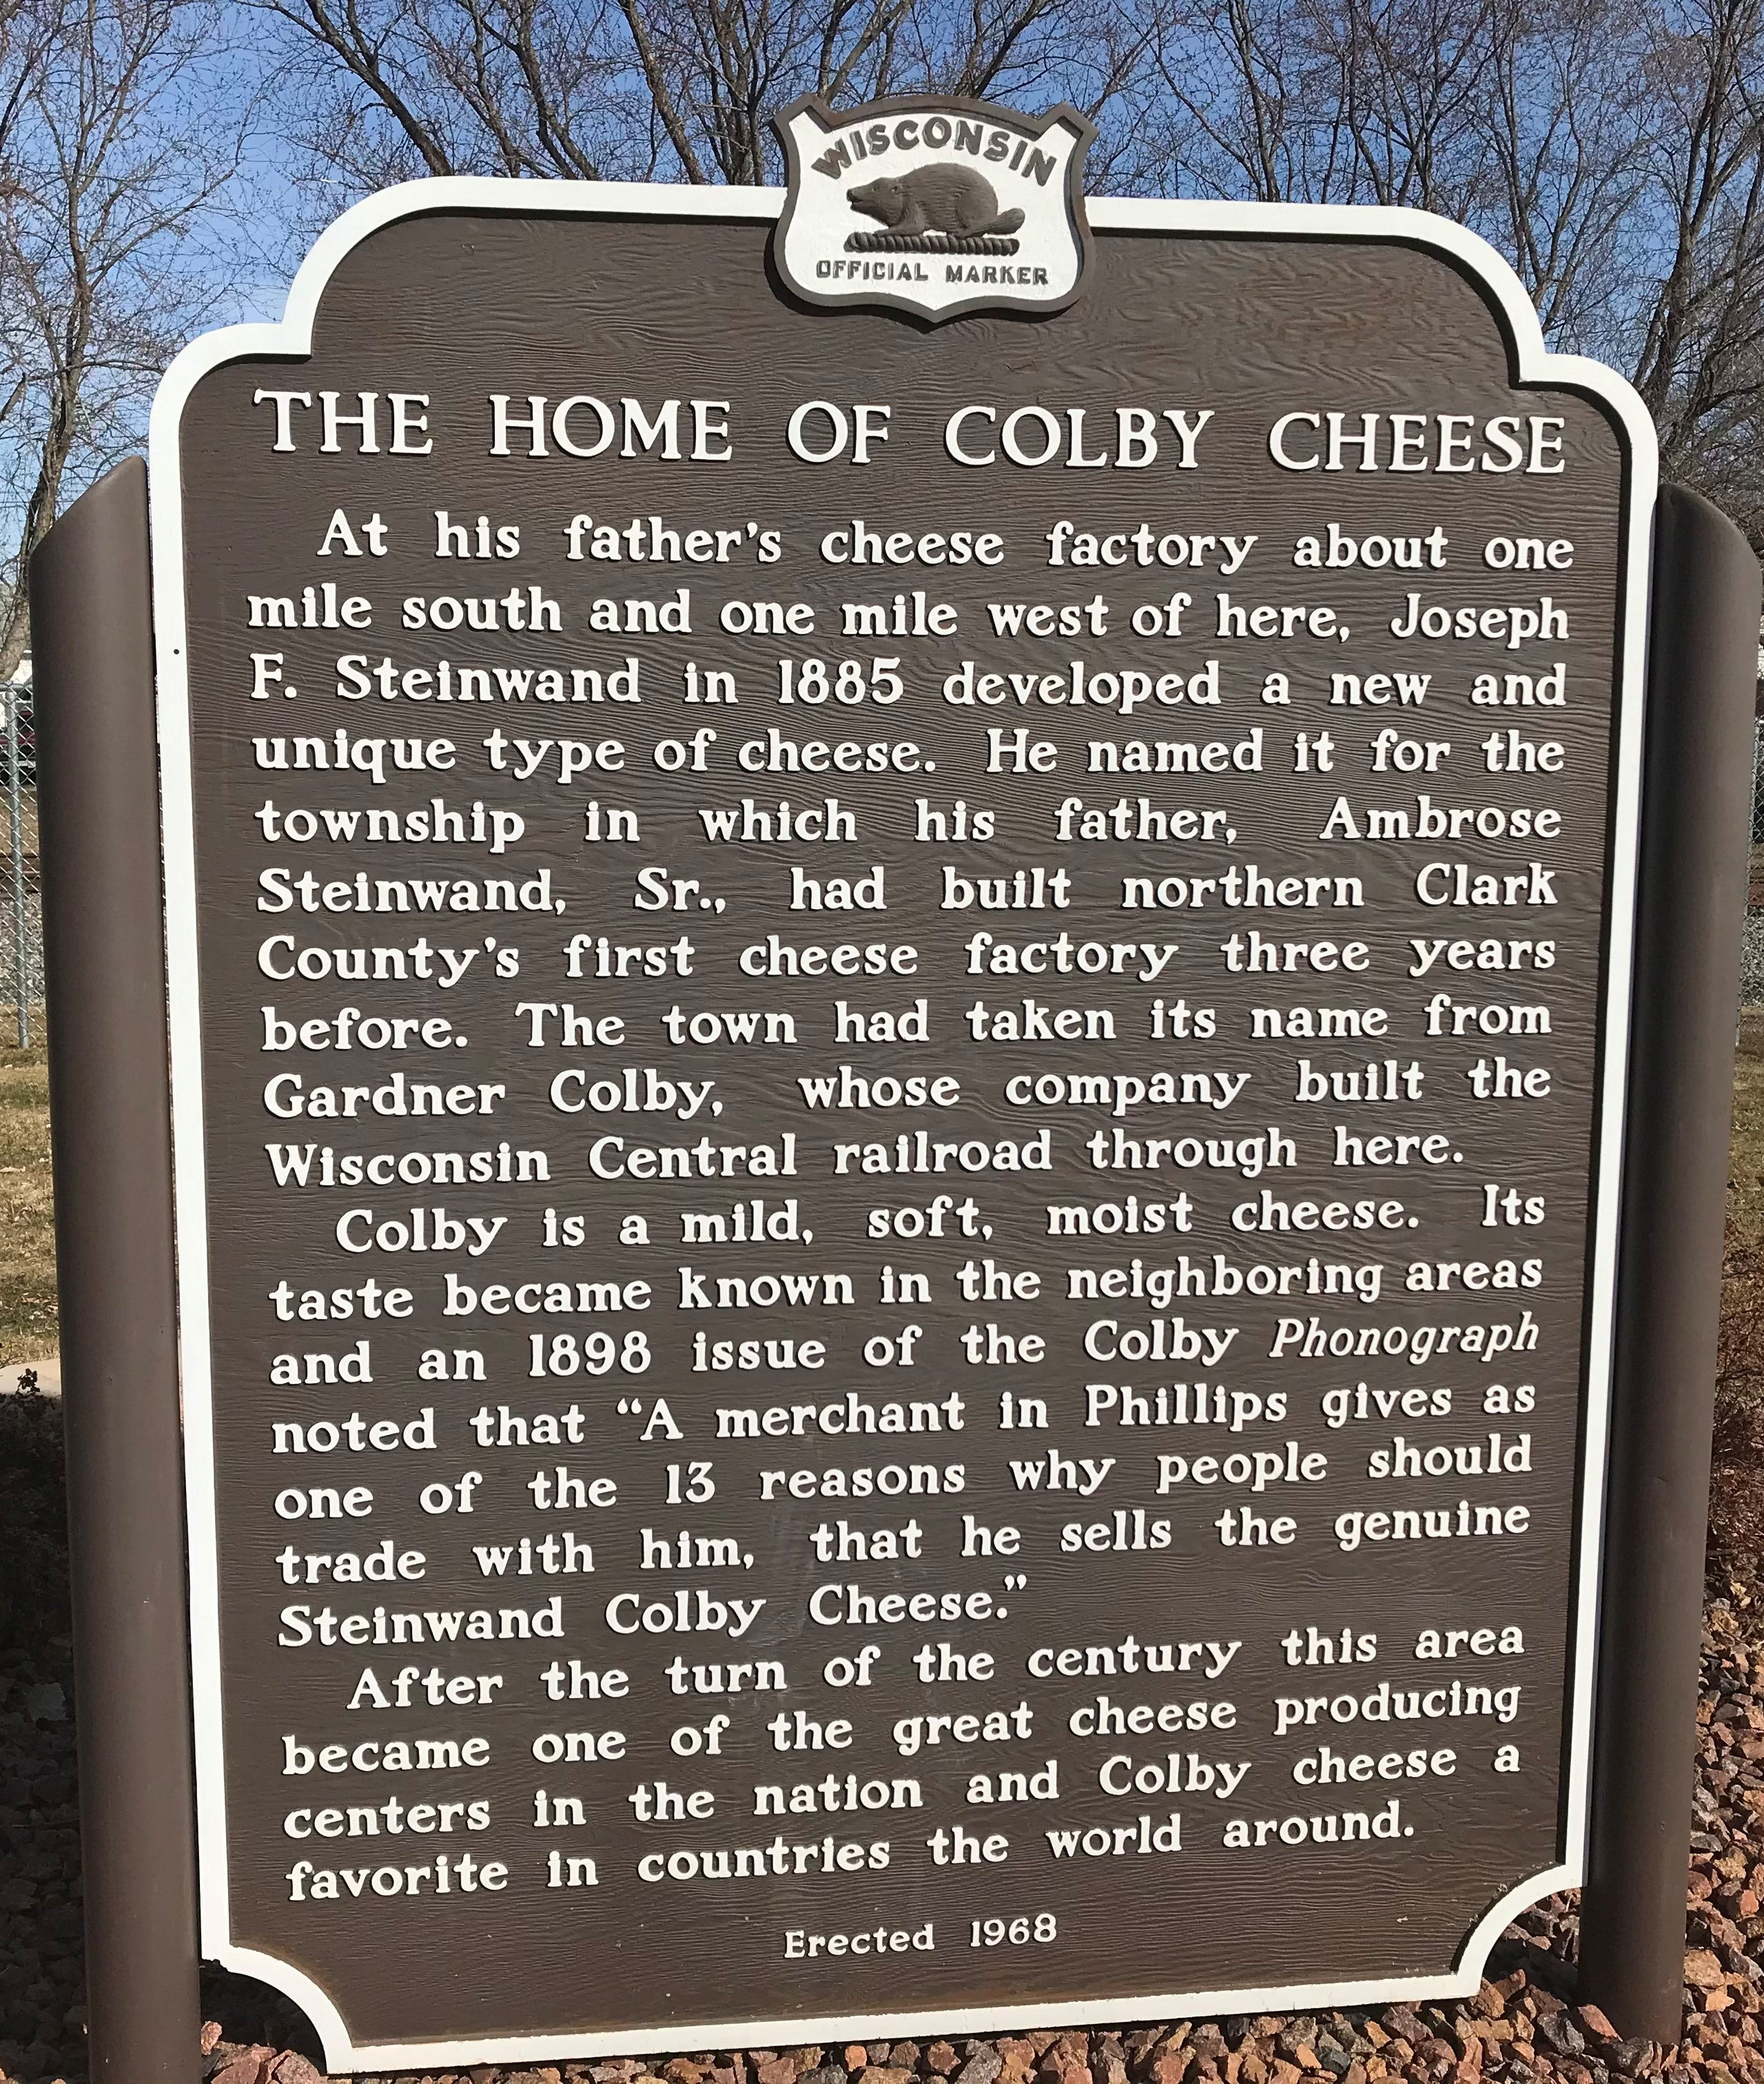 Joseph F. Steinwald first developed Colby cheese  in 1885 at his father's cheese factory located just south and west of Colby.